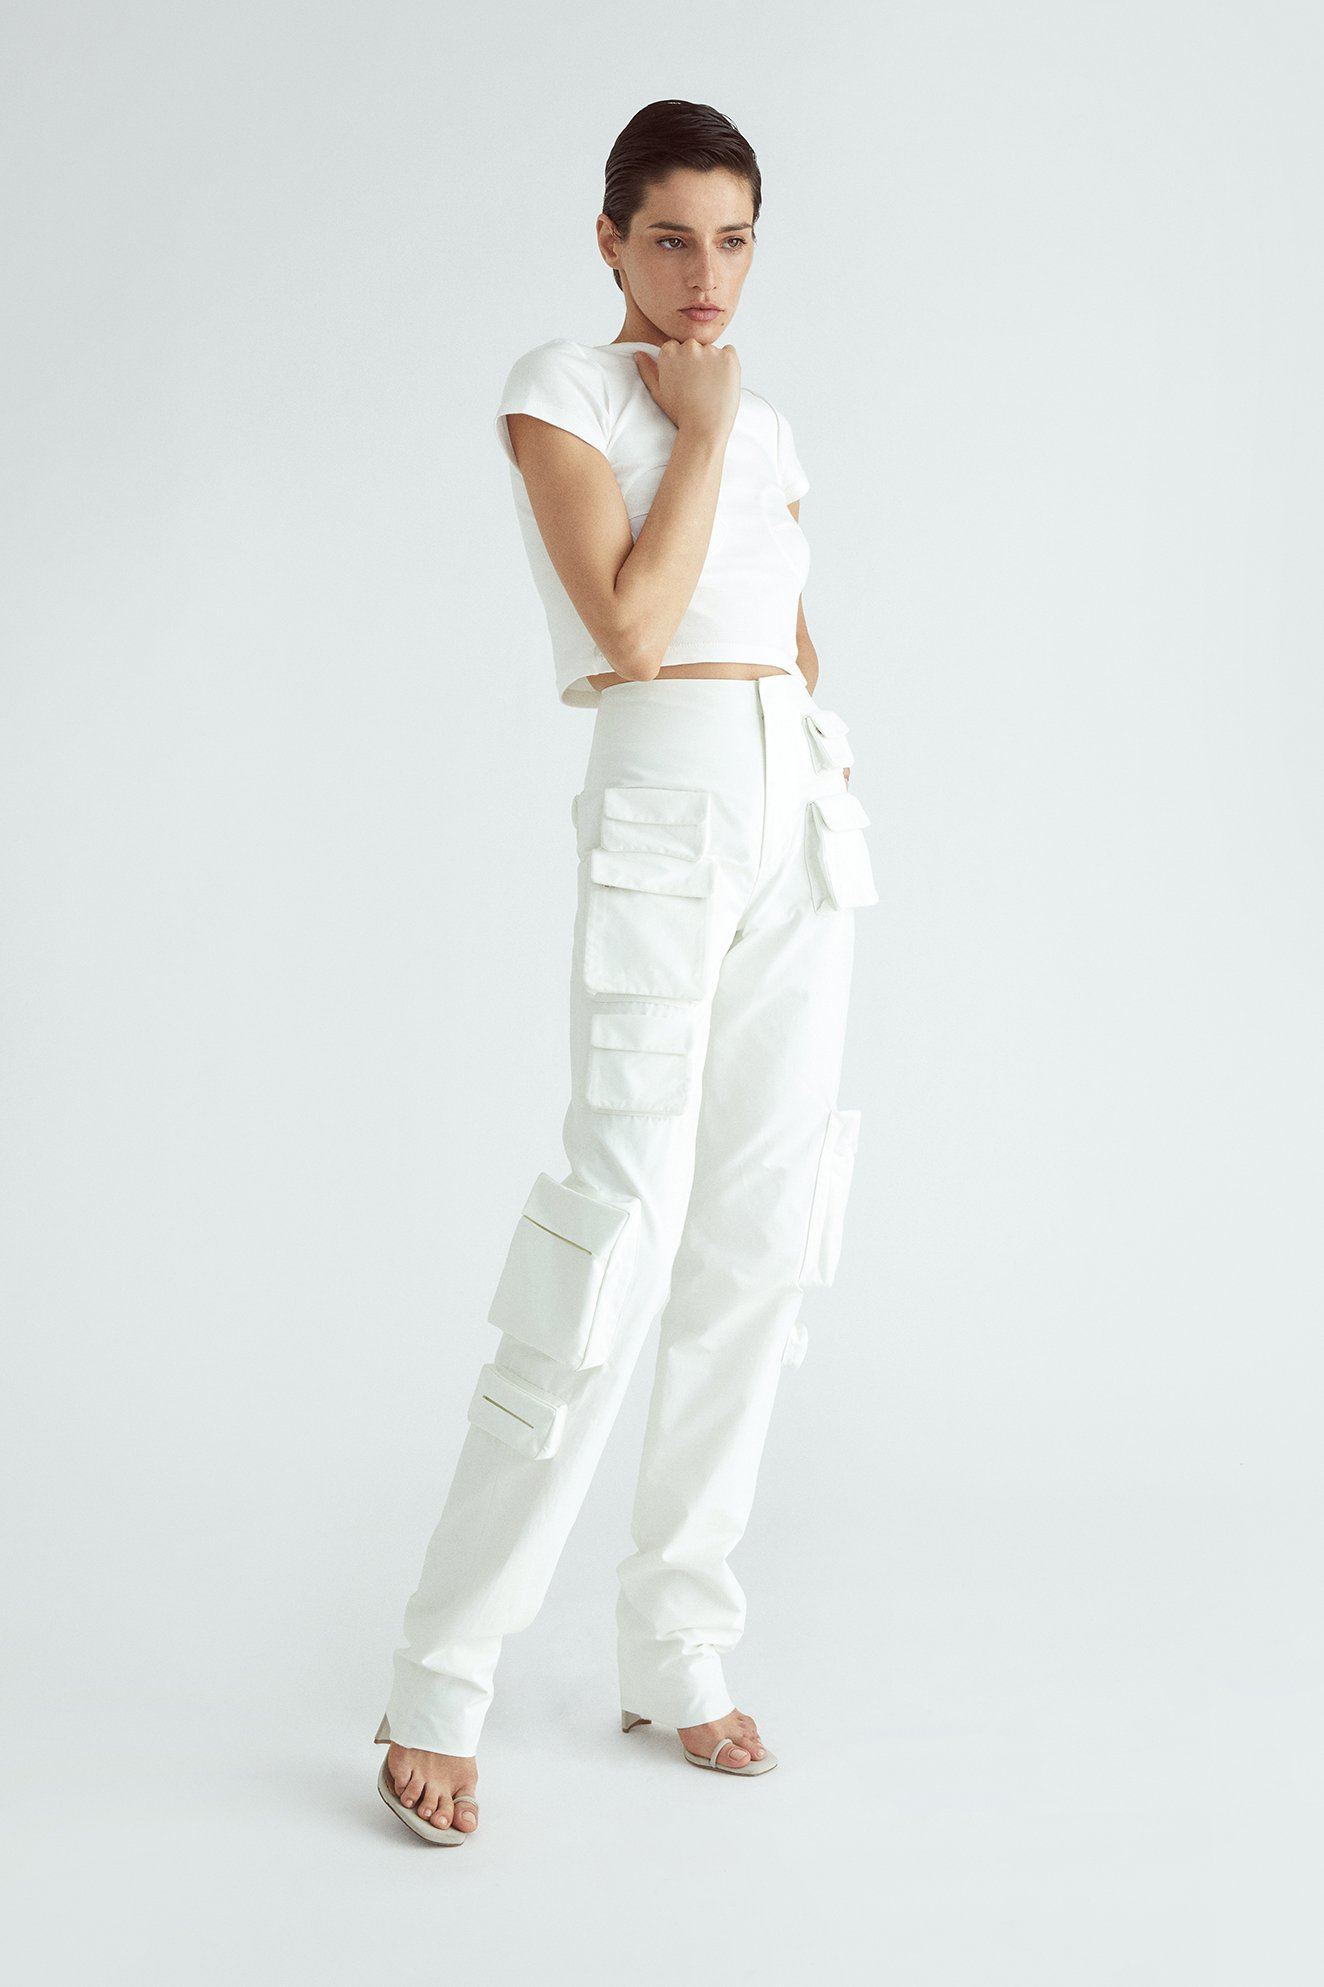 POCKET PANT ECRU by Orseund ris, available on orseundiris.com for $645 Elsa Hosk Pants Exact Product